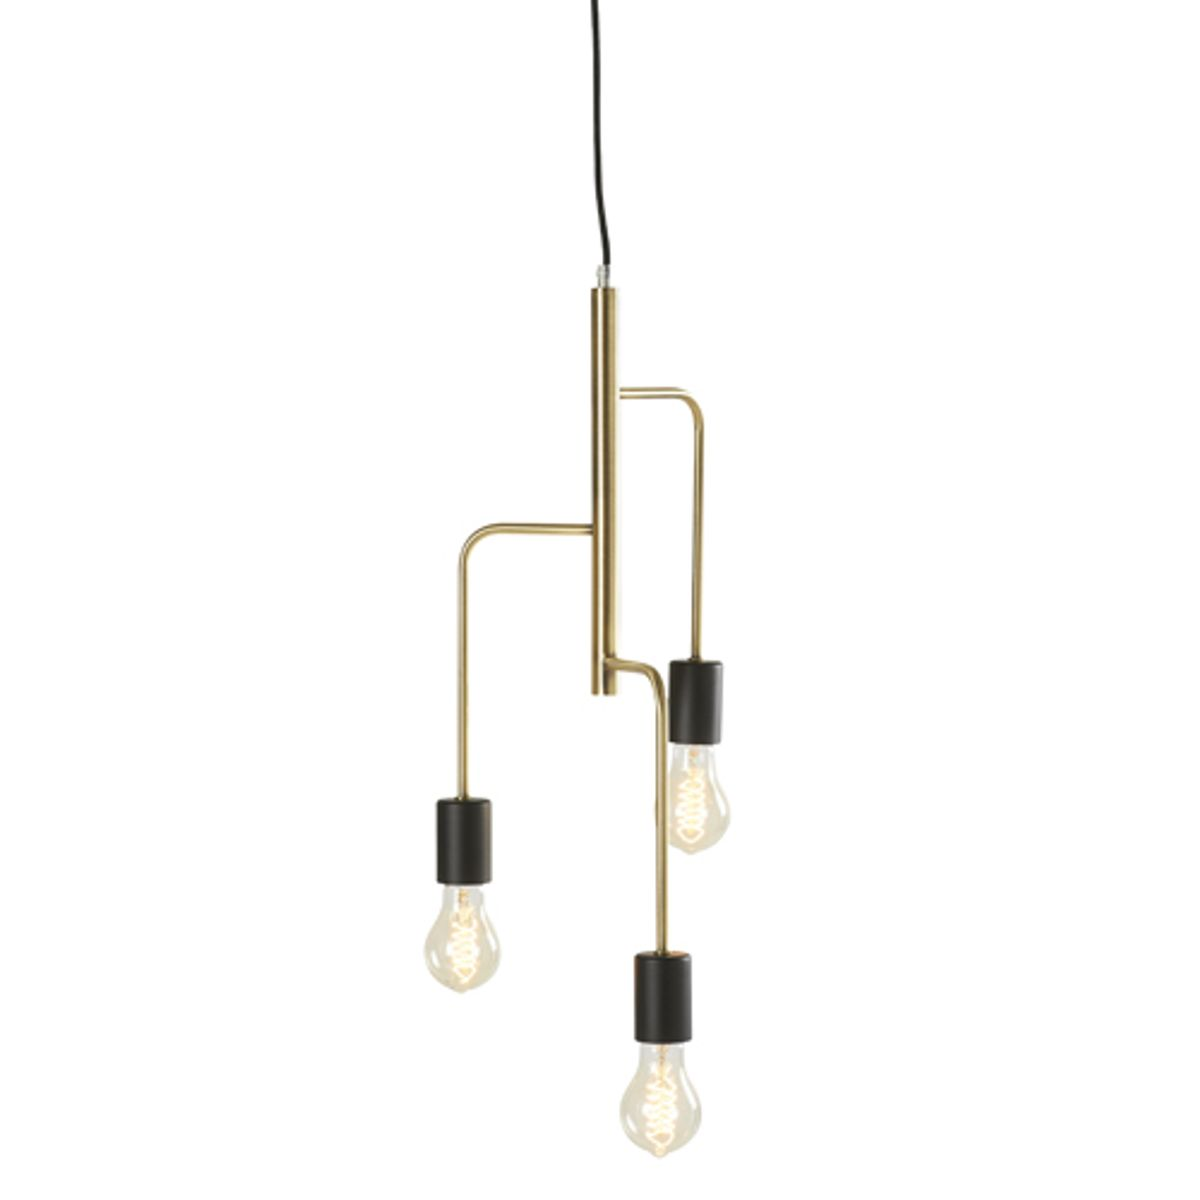 Lustre suspension 3 douilles en m tal laiton et noir for Lustre metal noir